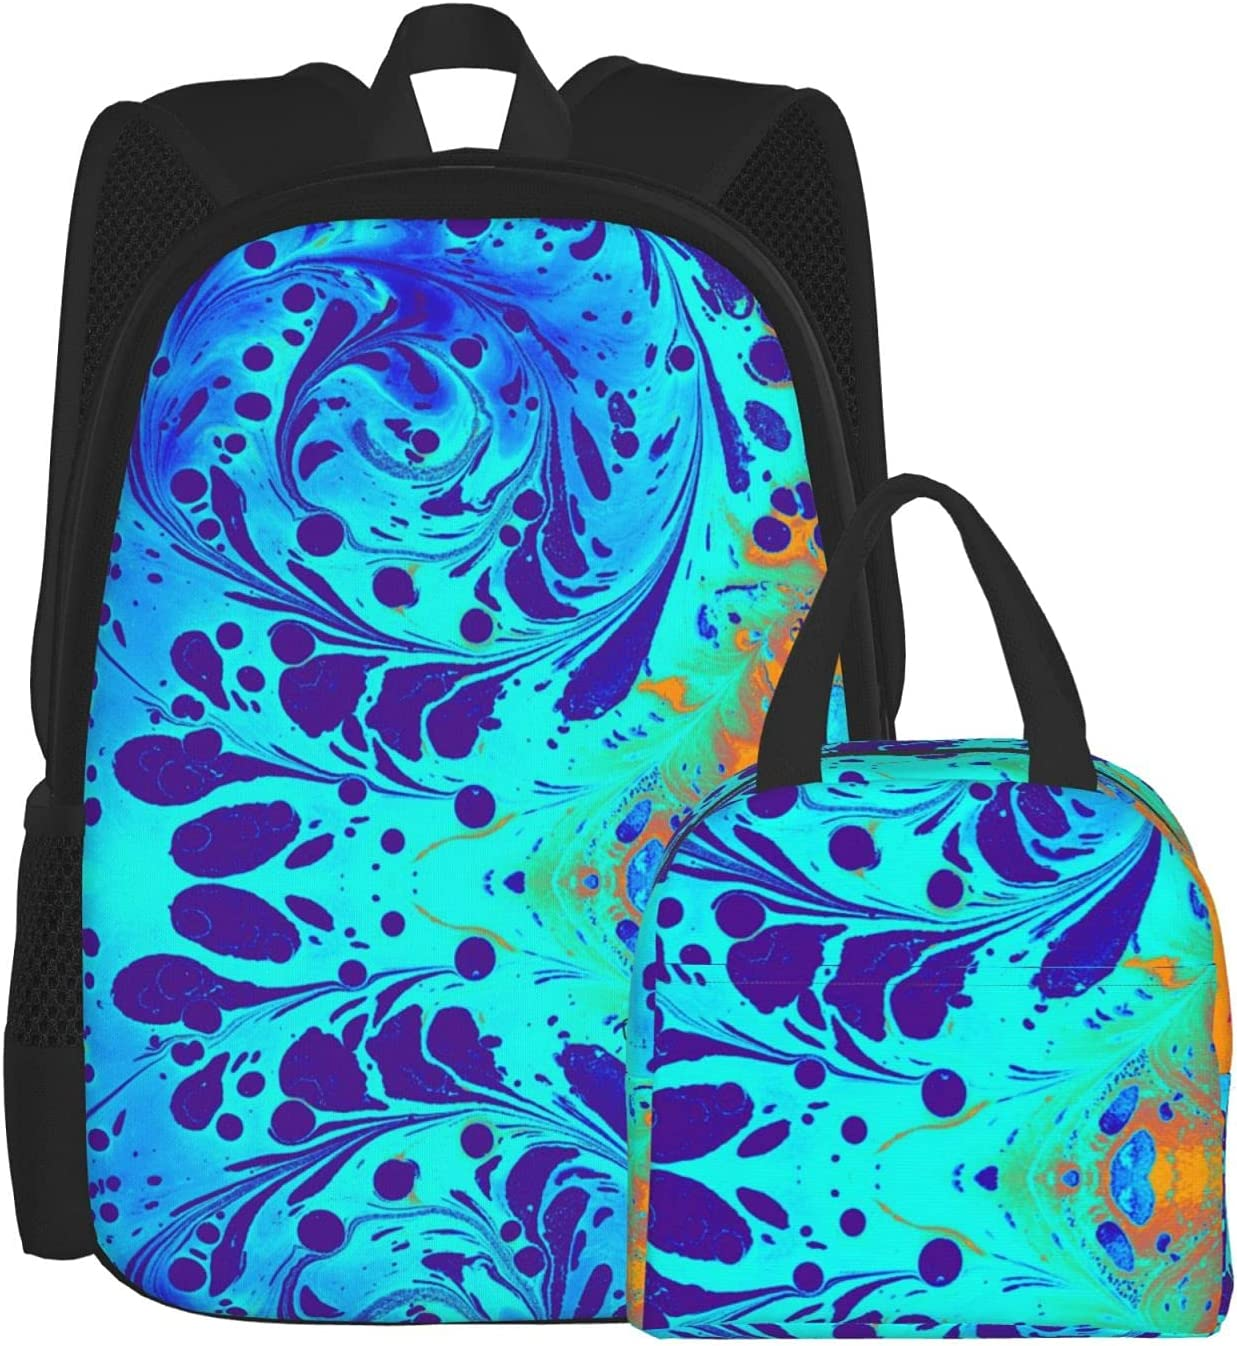 Abstract Marbling Floral Wholesale Pattern Backpacks Men For Women Teen Co Boston Mall